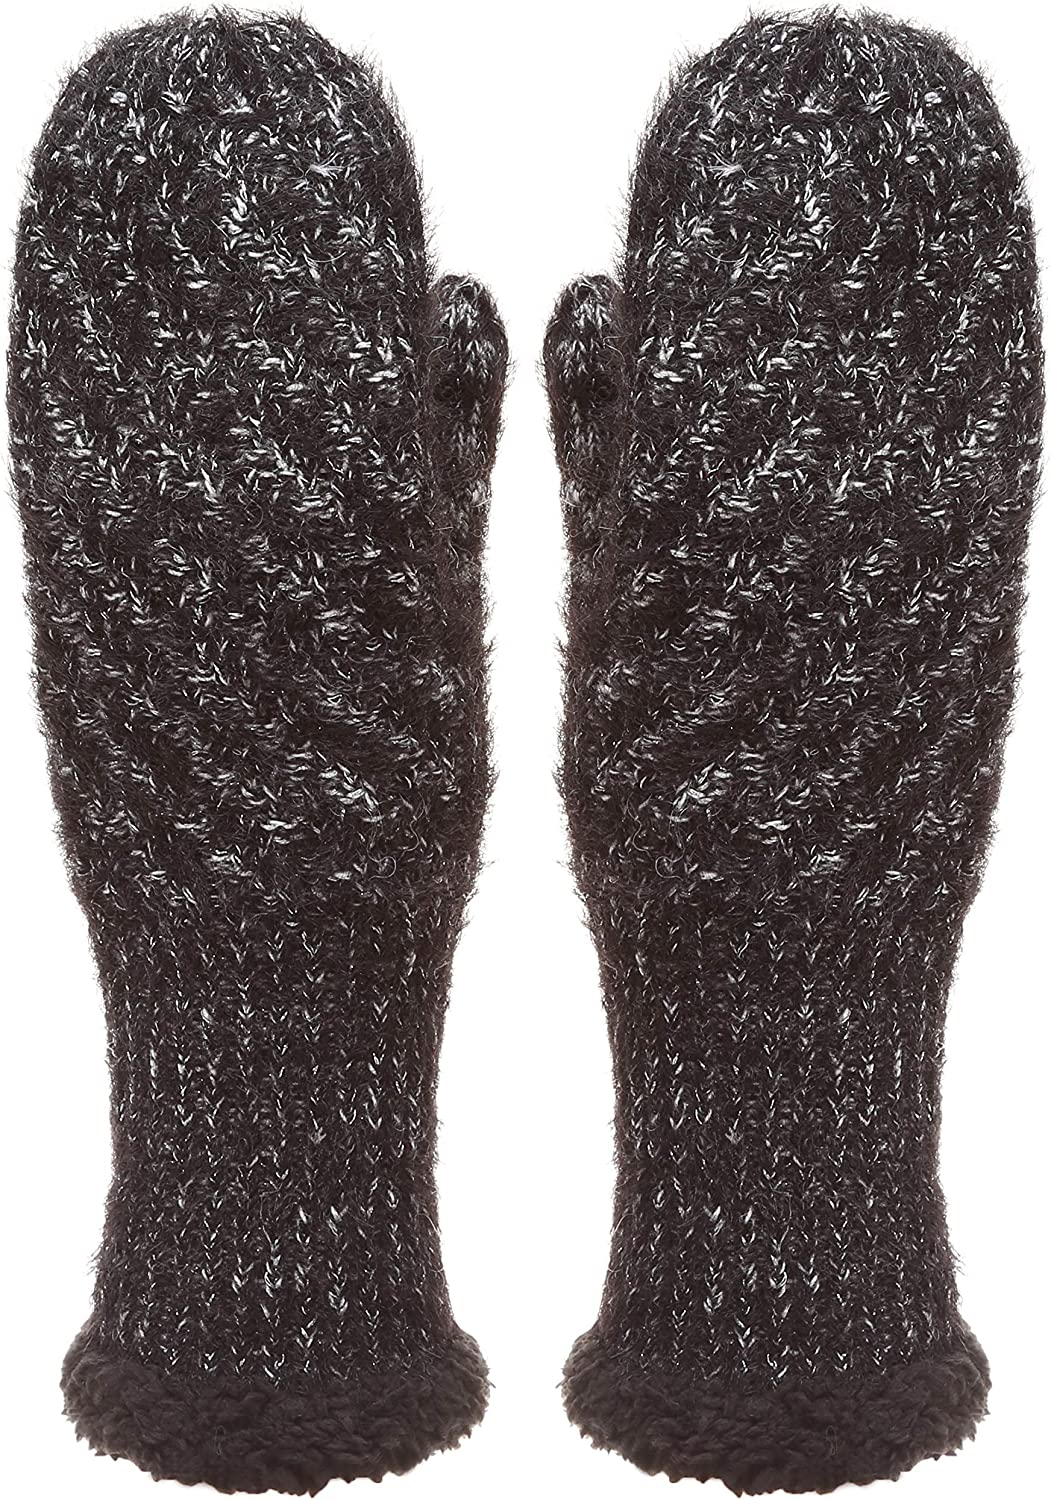 MIRMARU Women's Winter Warm Gloves Classic Thick Cable Knit Mittens with Soft Plush Lining